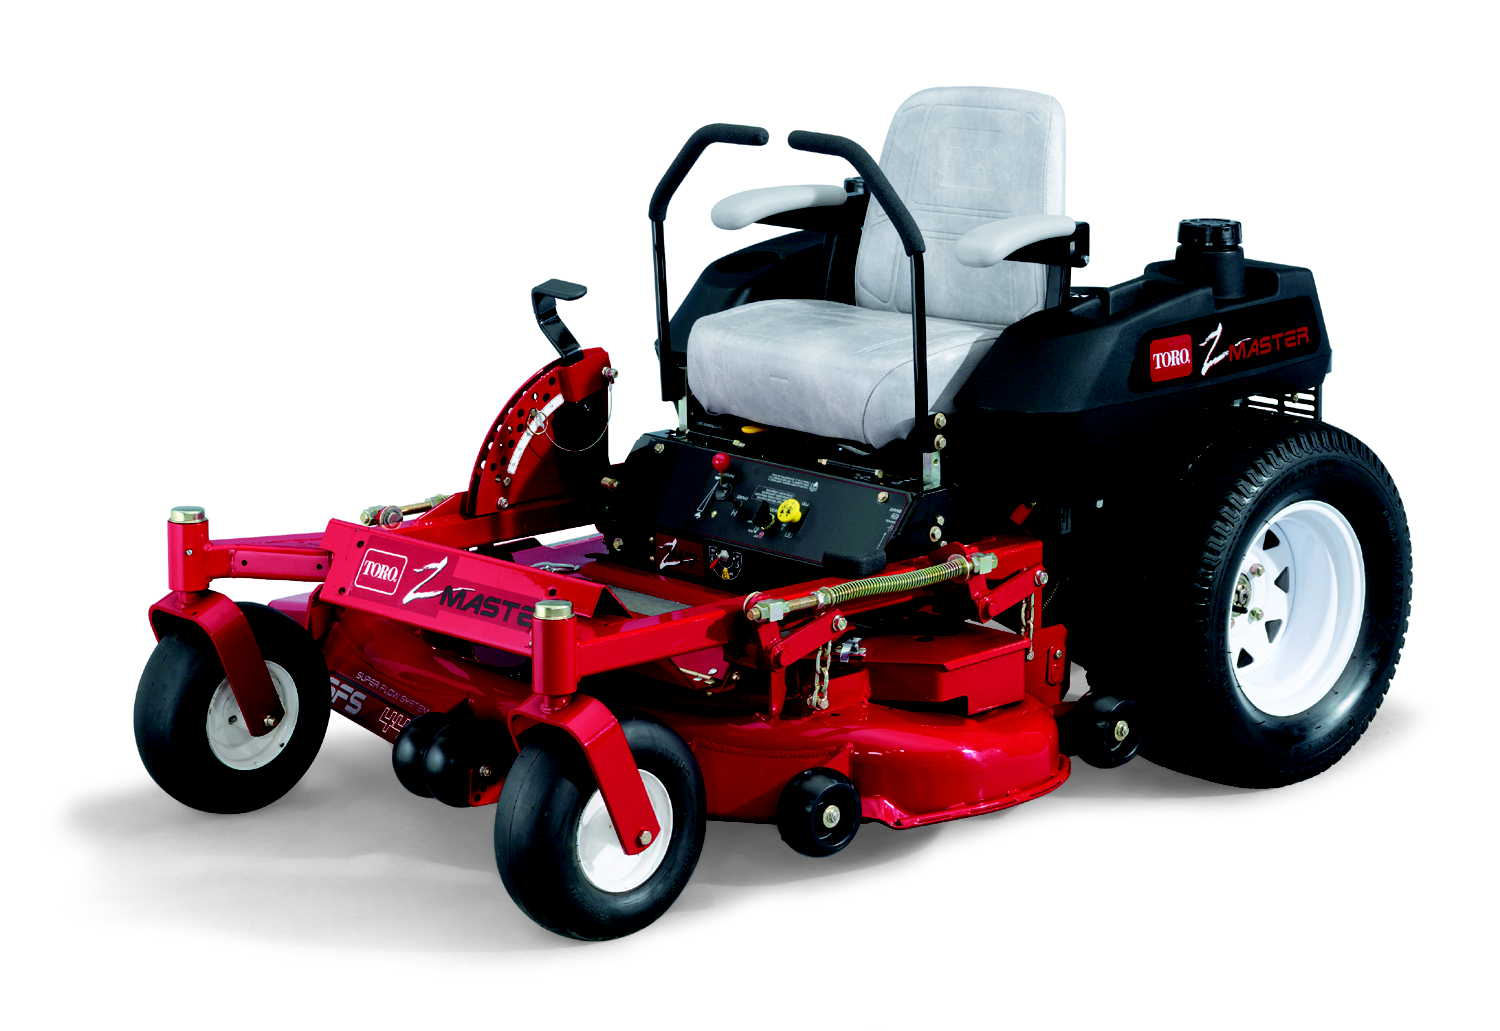 Toro timecutter z and wheel horse residential duty riding mowers are not part of this recall picture of recalled lawn mower